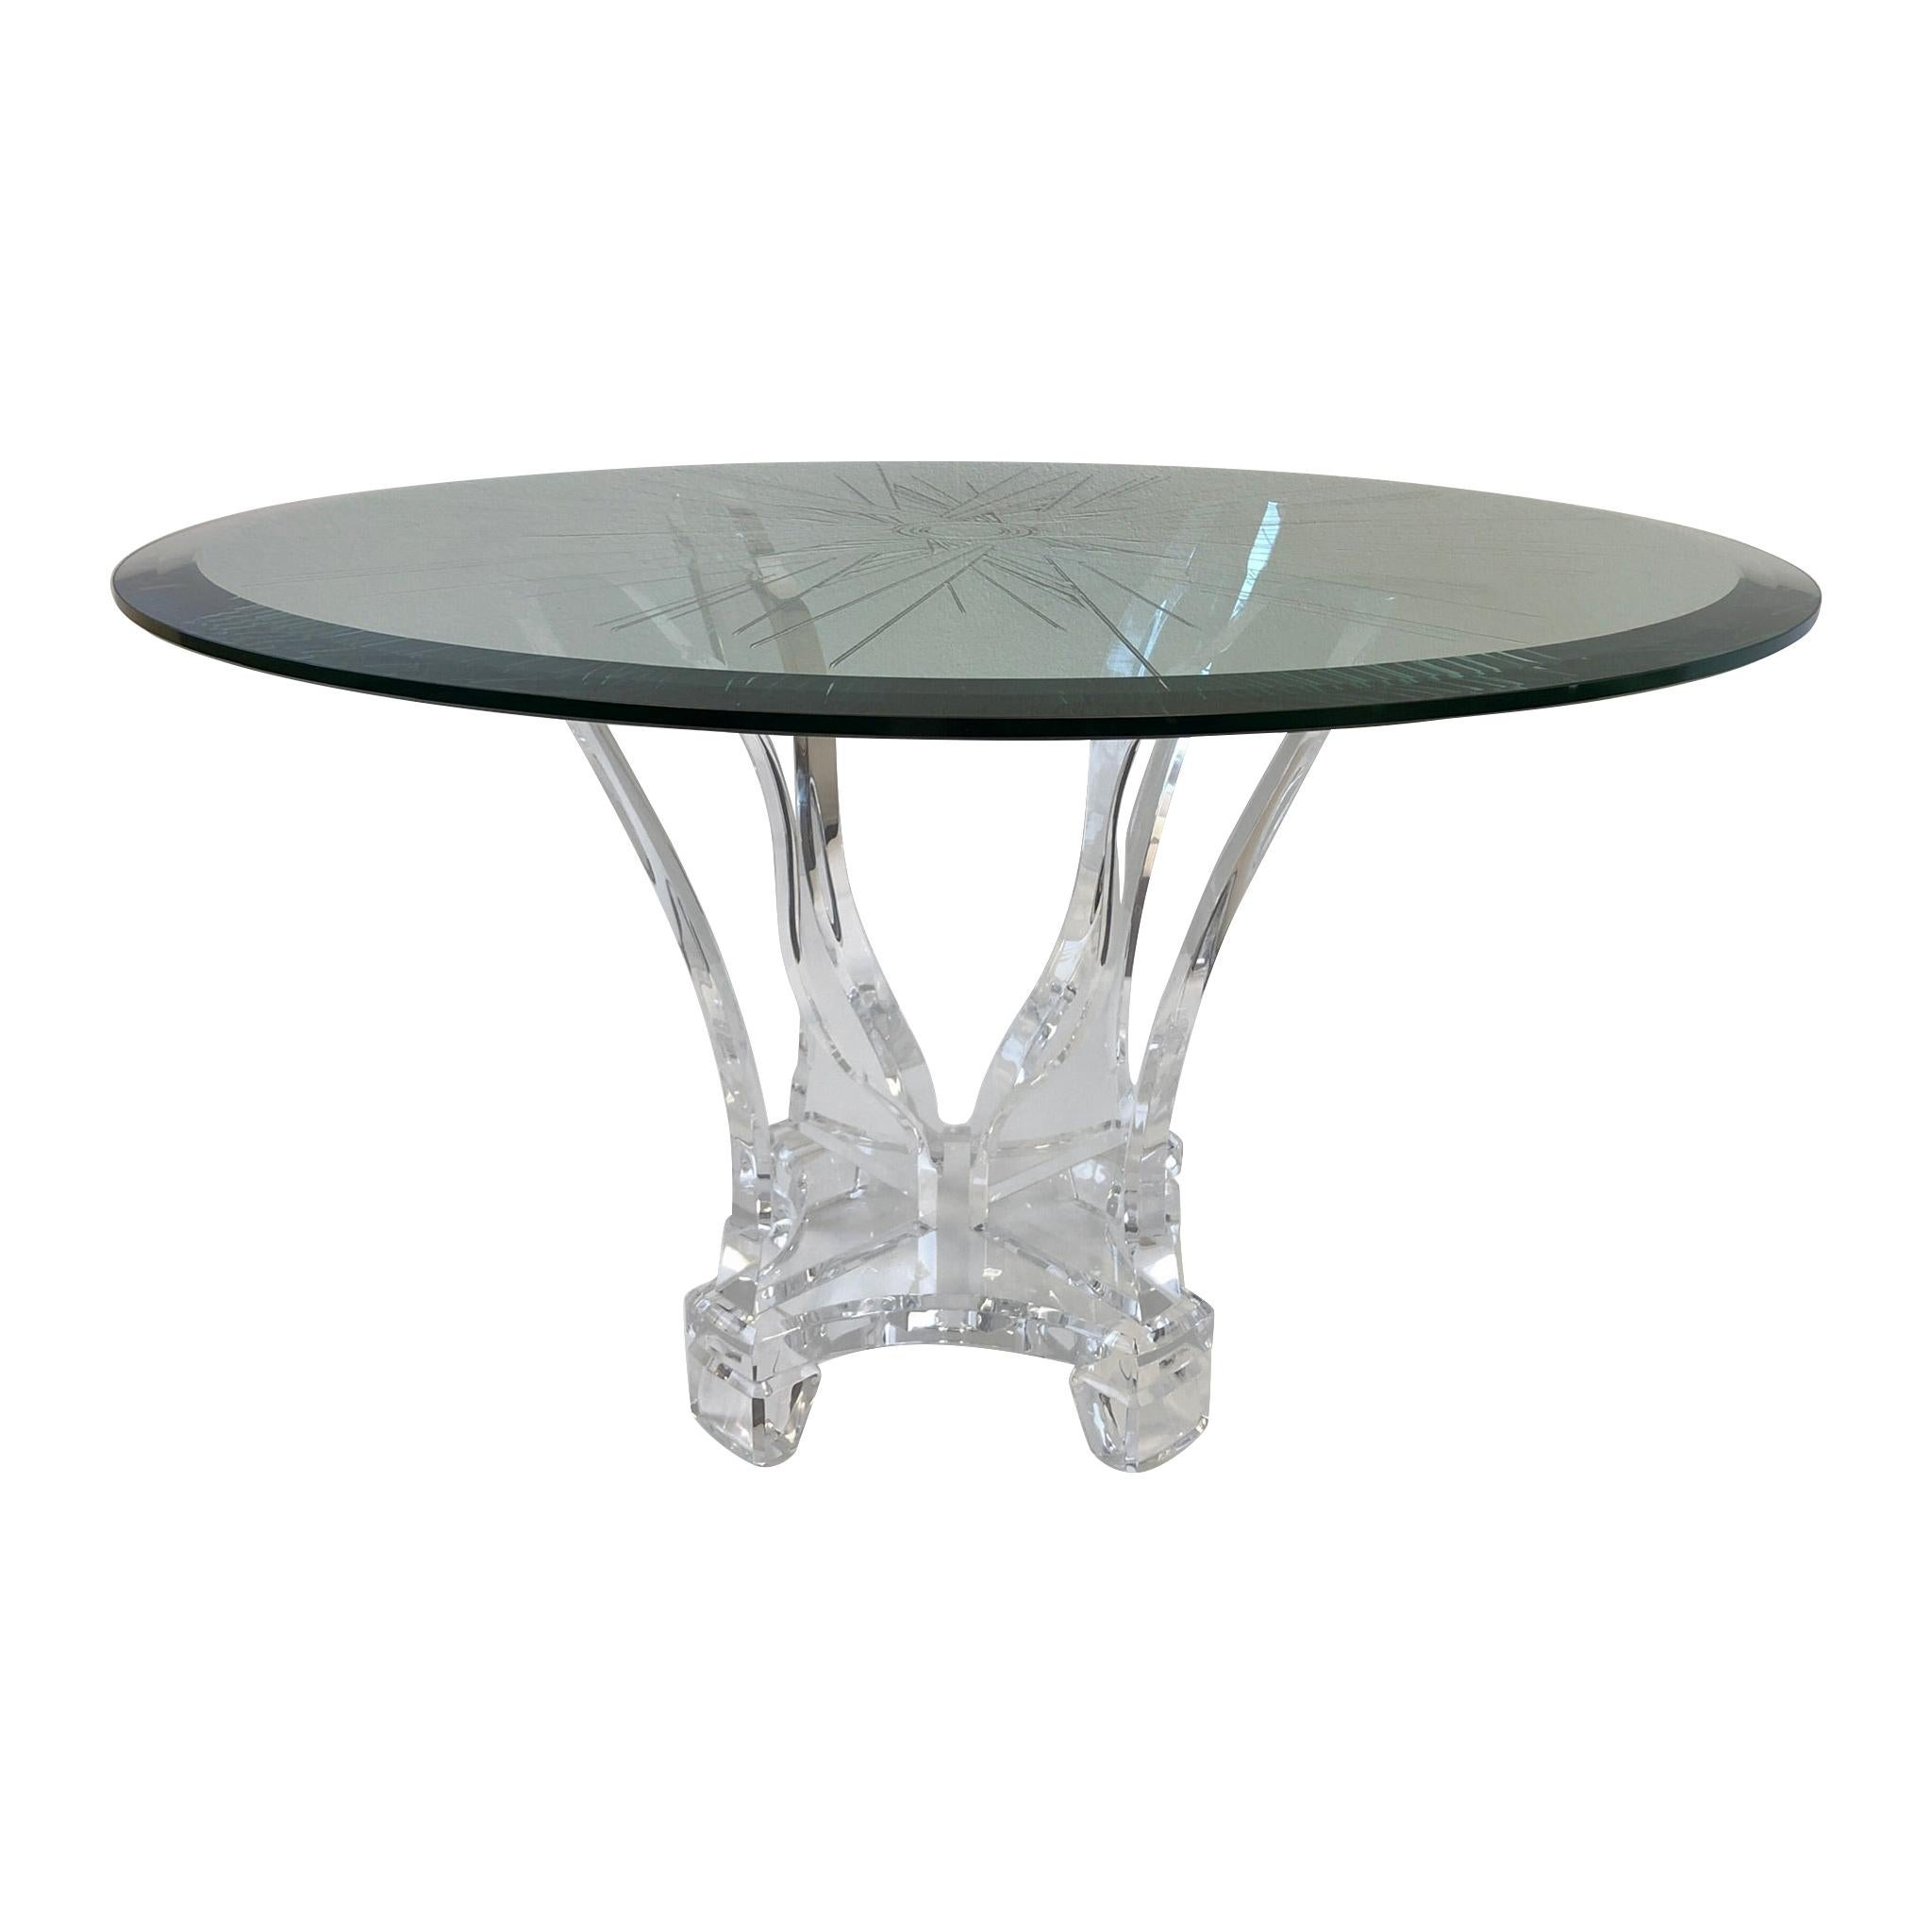 Lucite and Beveled Glass Dining Table by Lion in Frost